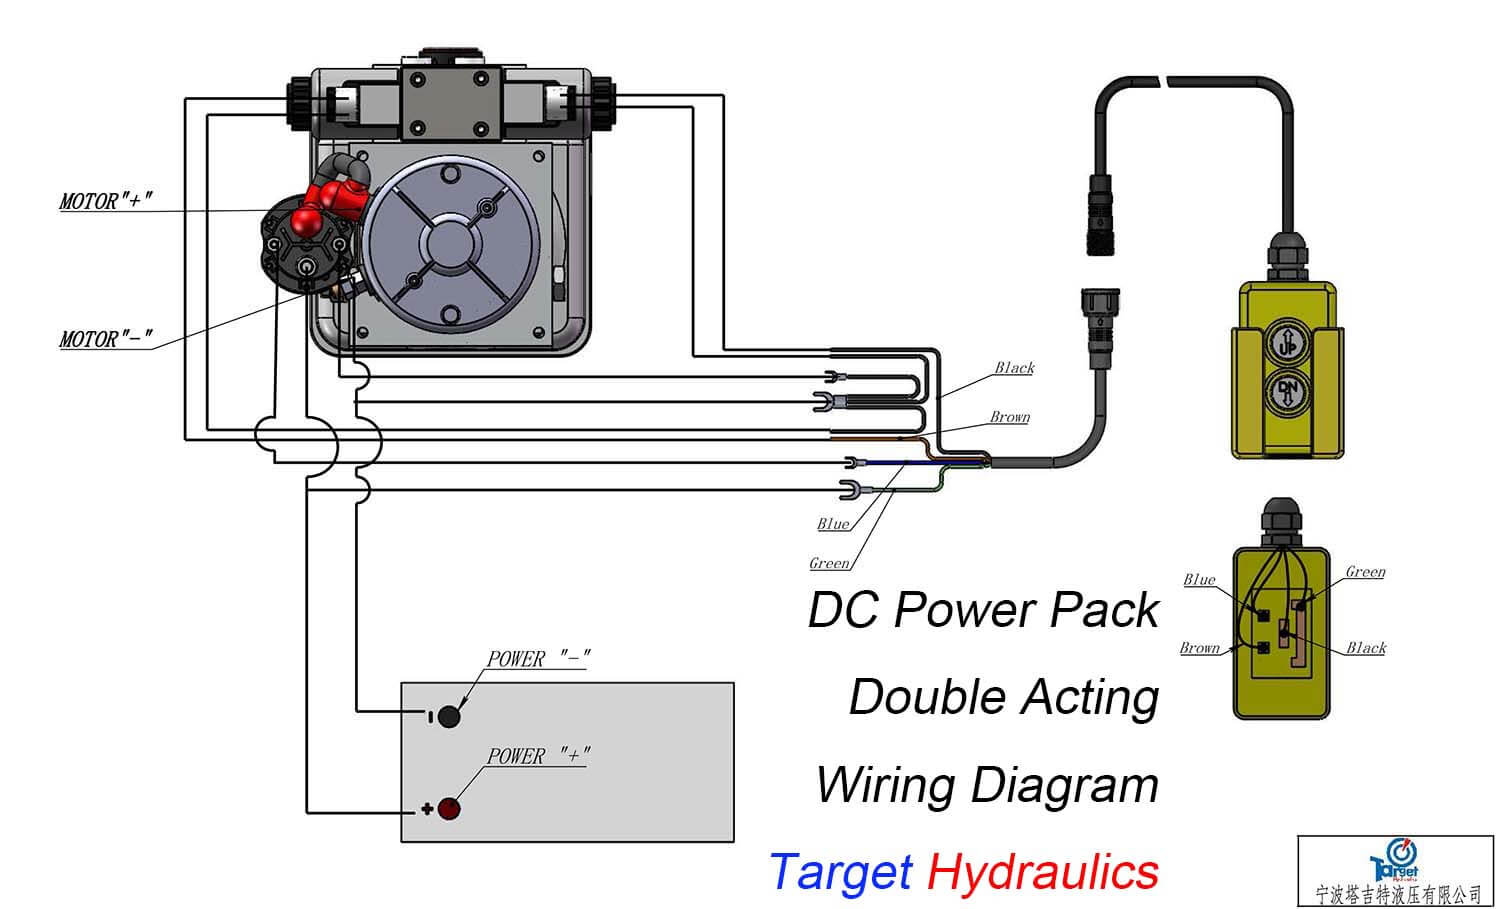 How to Wire_DC Motor Double Acting Power Pack how to wire hydraulic power pack,power unit diagram design 110 Power Cord Diagram at virtualis.co